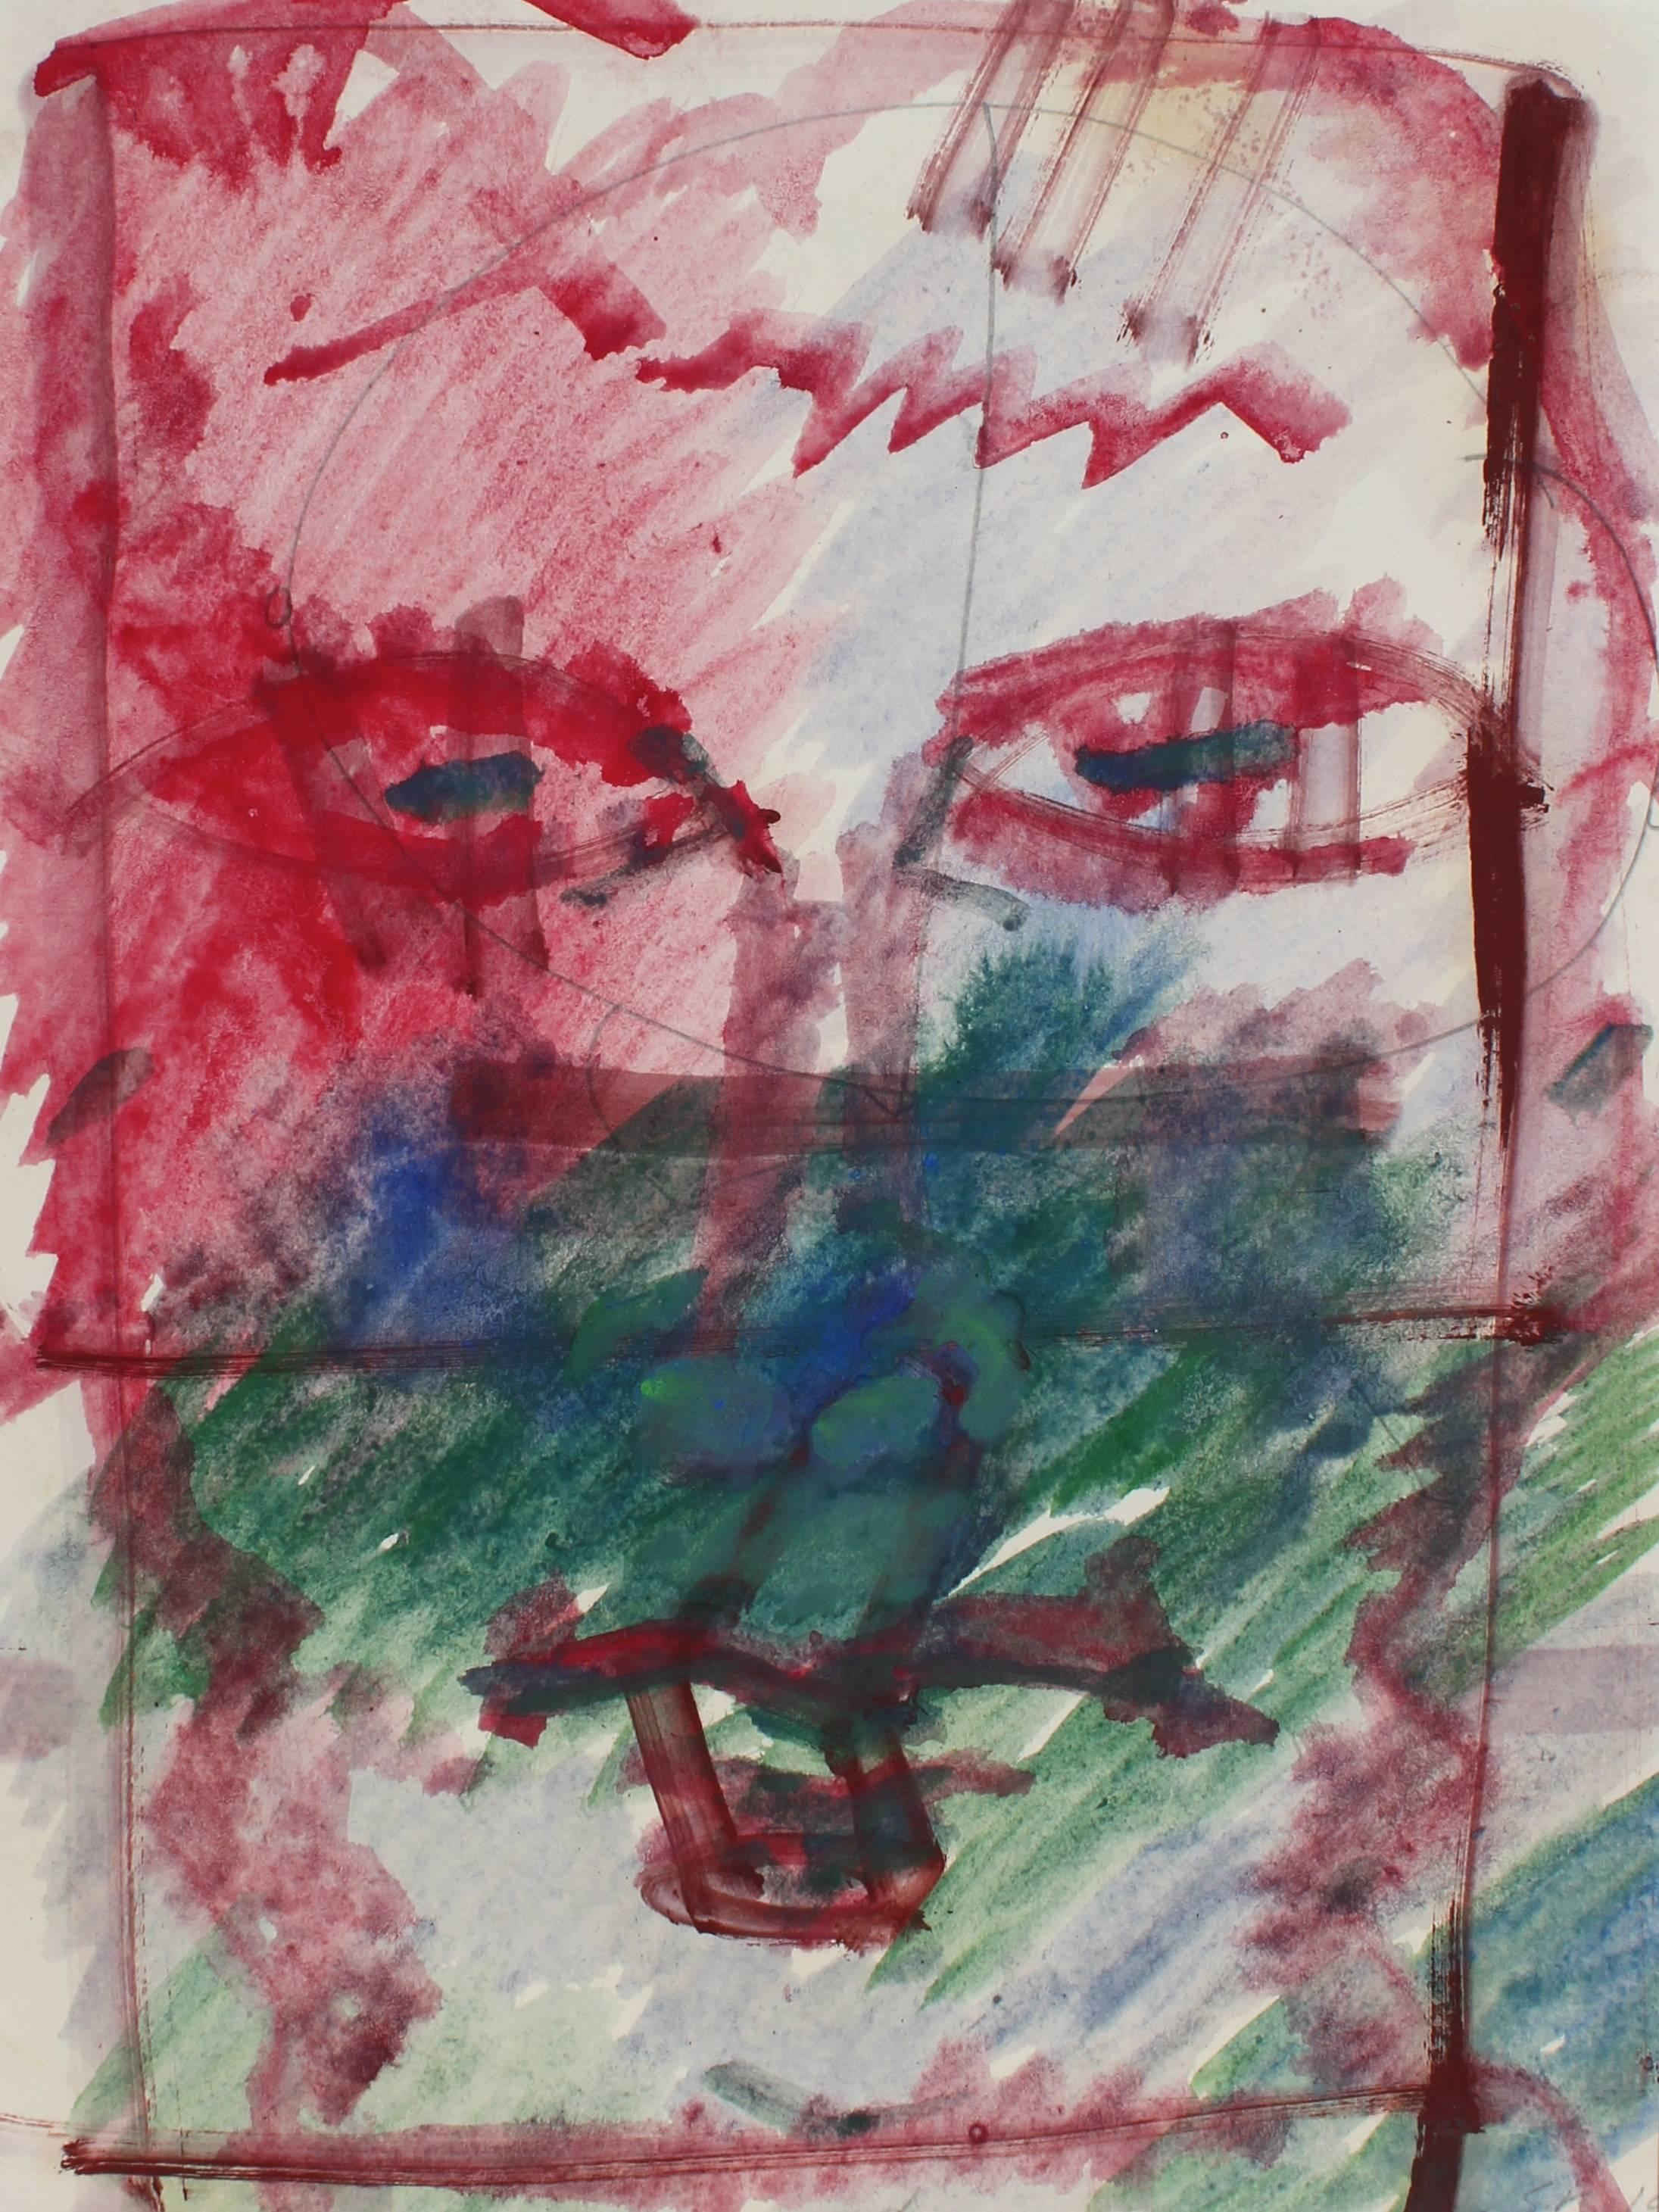 Colorful Modernist Abstracted Portrait in Oil with Red and Green, Circa 1960s